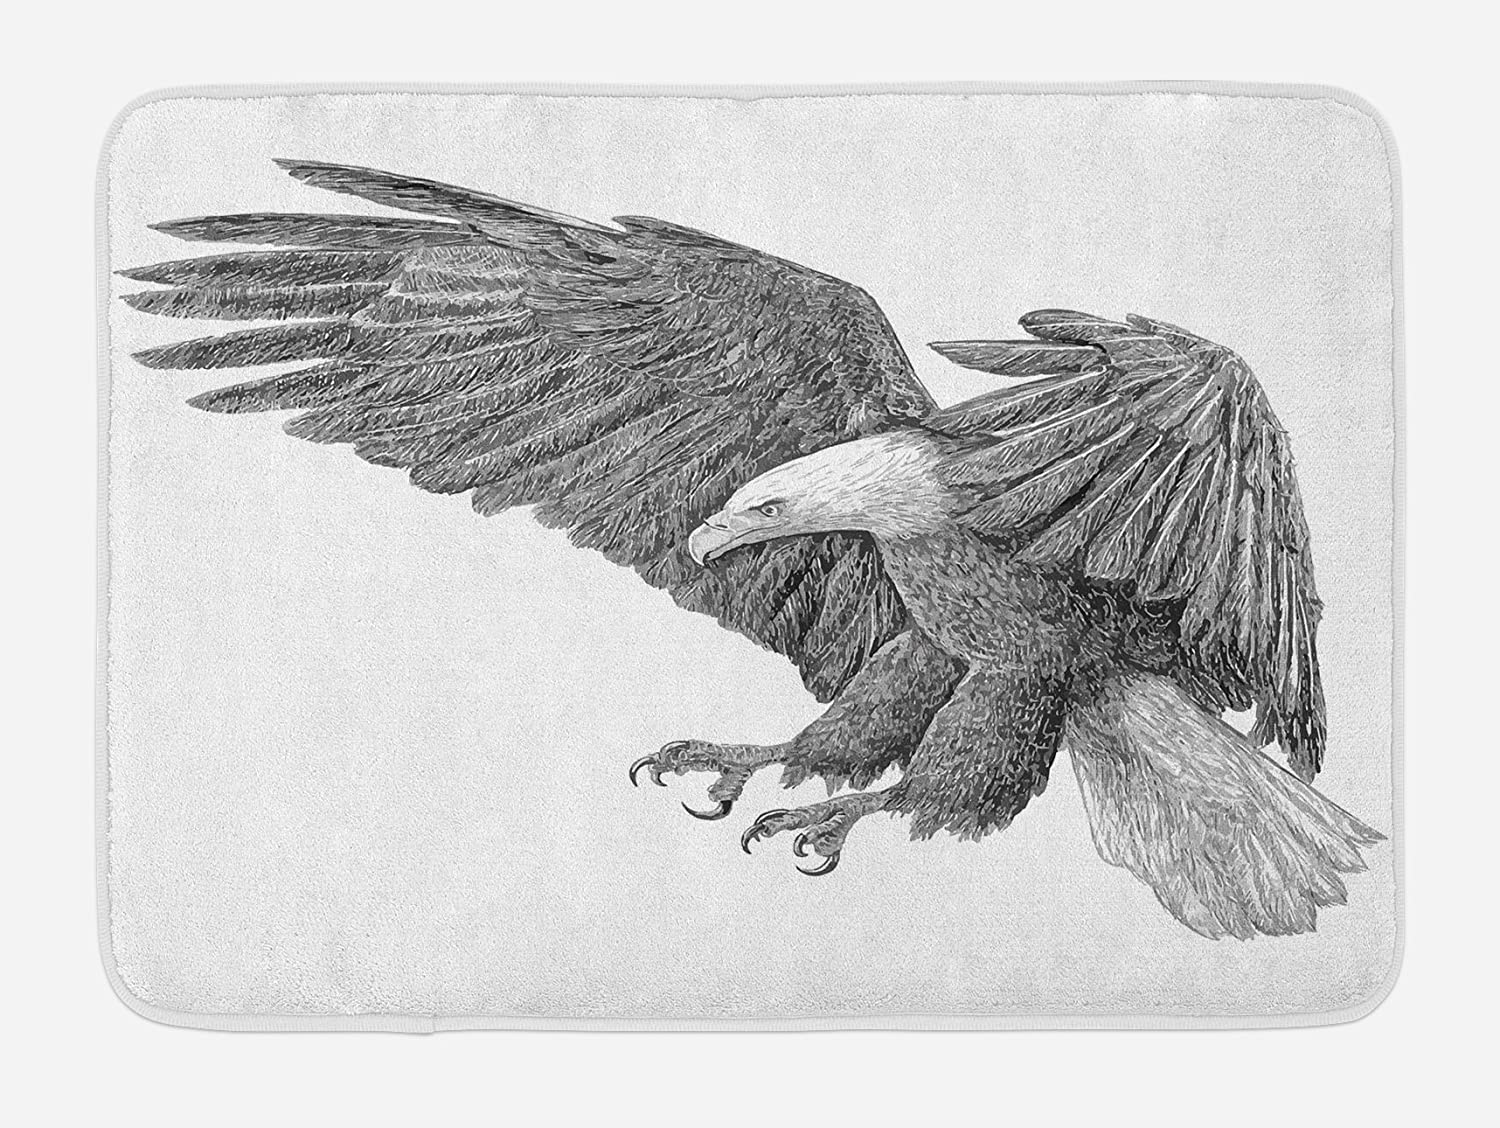 Ambesonne eagle bath mat black and white pencil drawing style eagle with detailed features wild nature plush bathroom decor mat with non slip